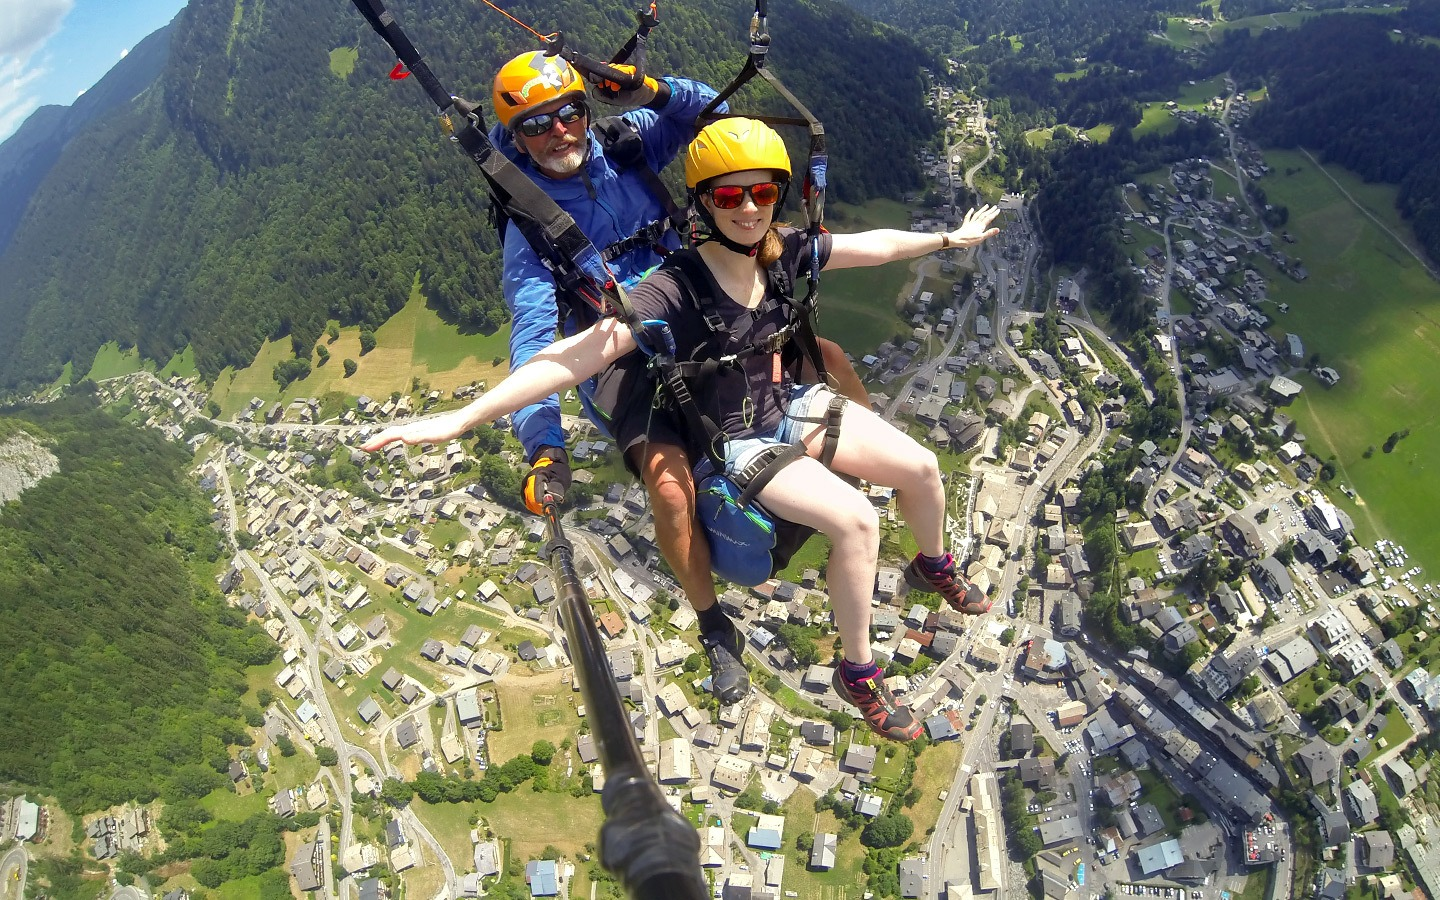 Paragliding/parapenting in Morzine in summer, French Alps